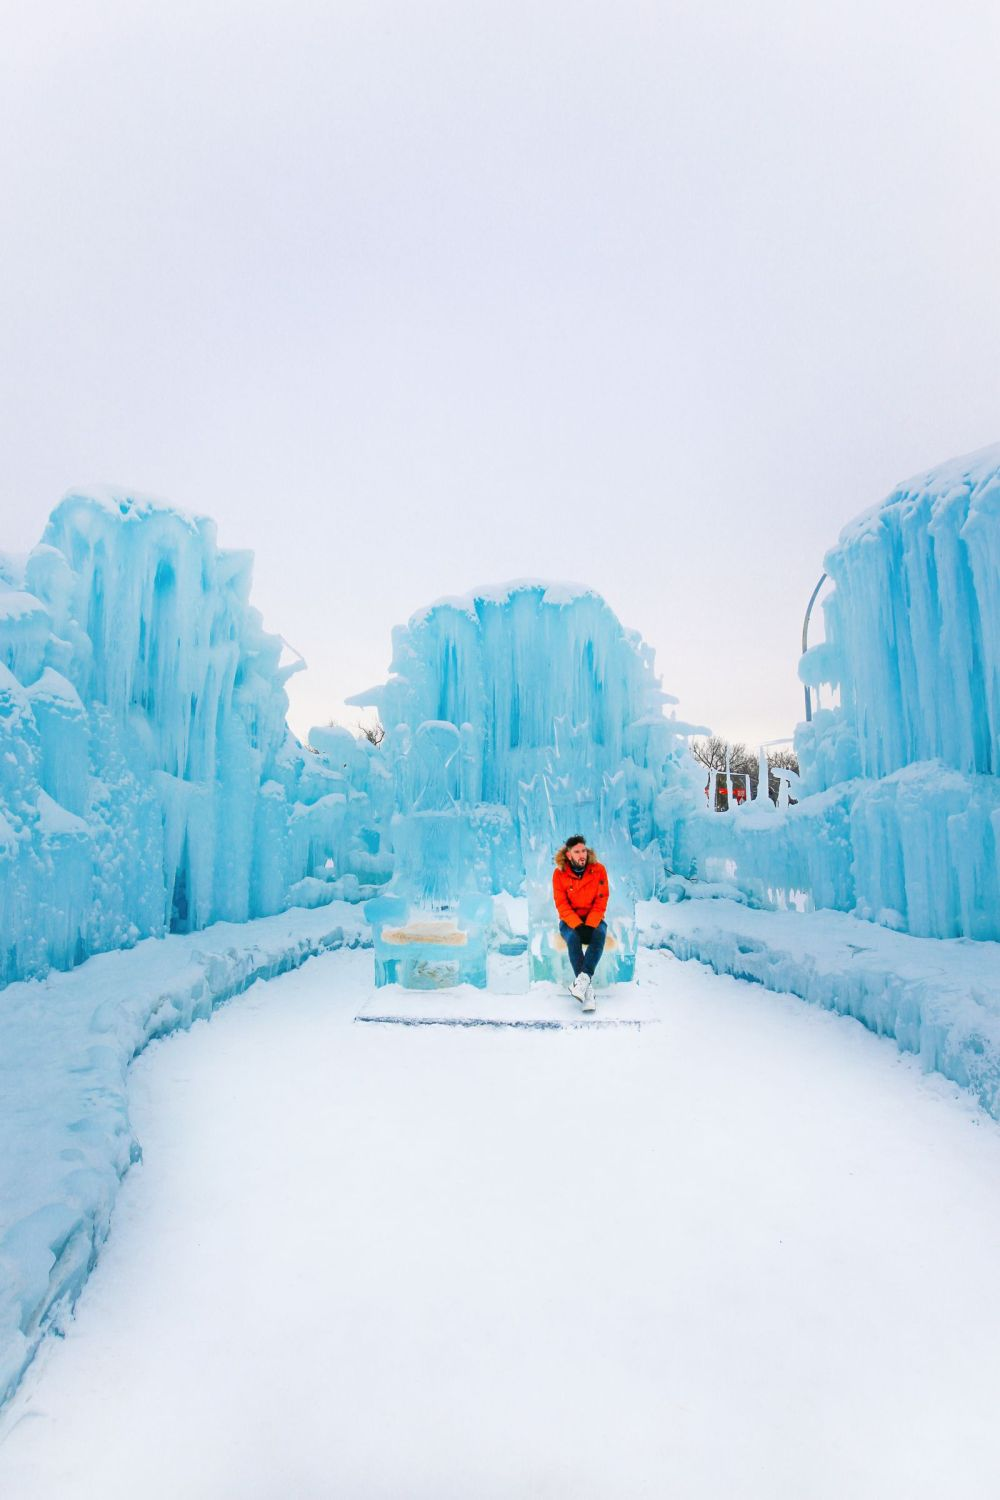 Fat Biking Across The Frozen River Valley To The Ice Castles Of Edmonton, Canada (51)